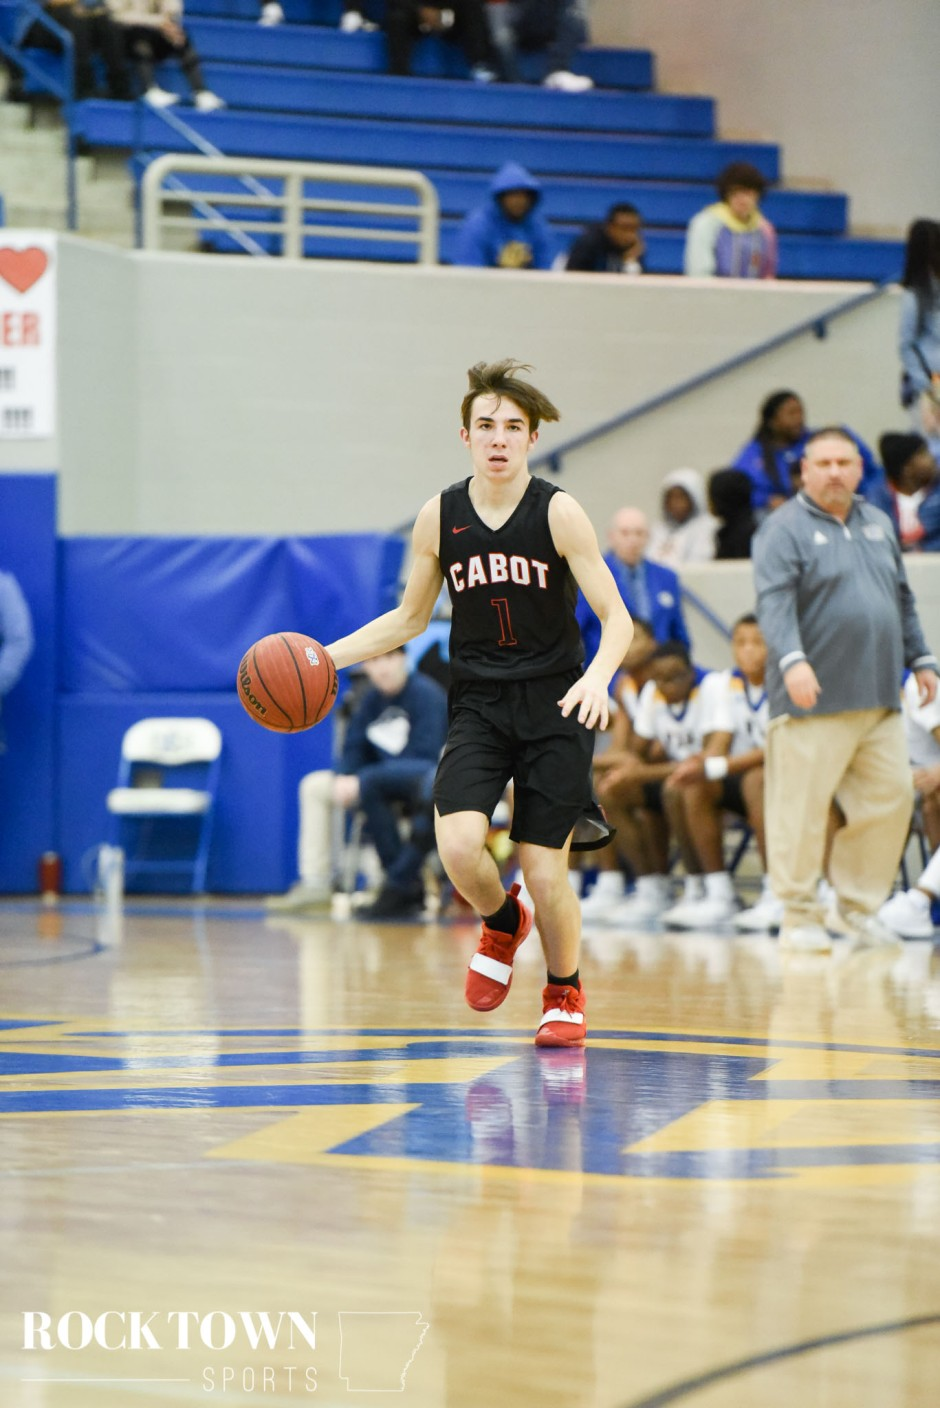 nlr_cabot_basketball_2019_(int)-119